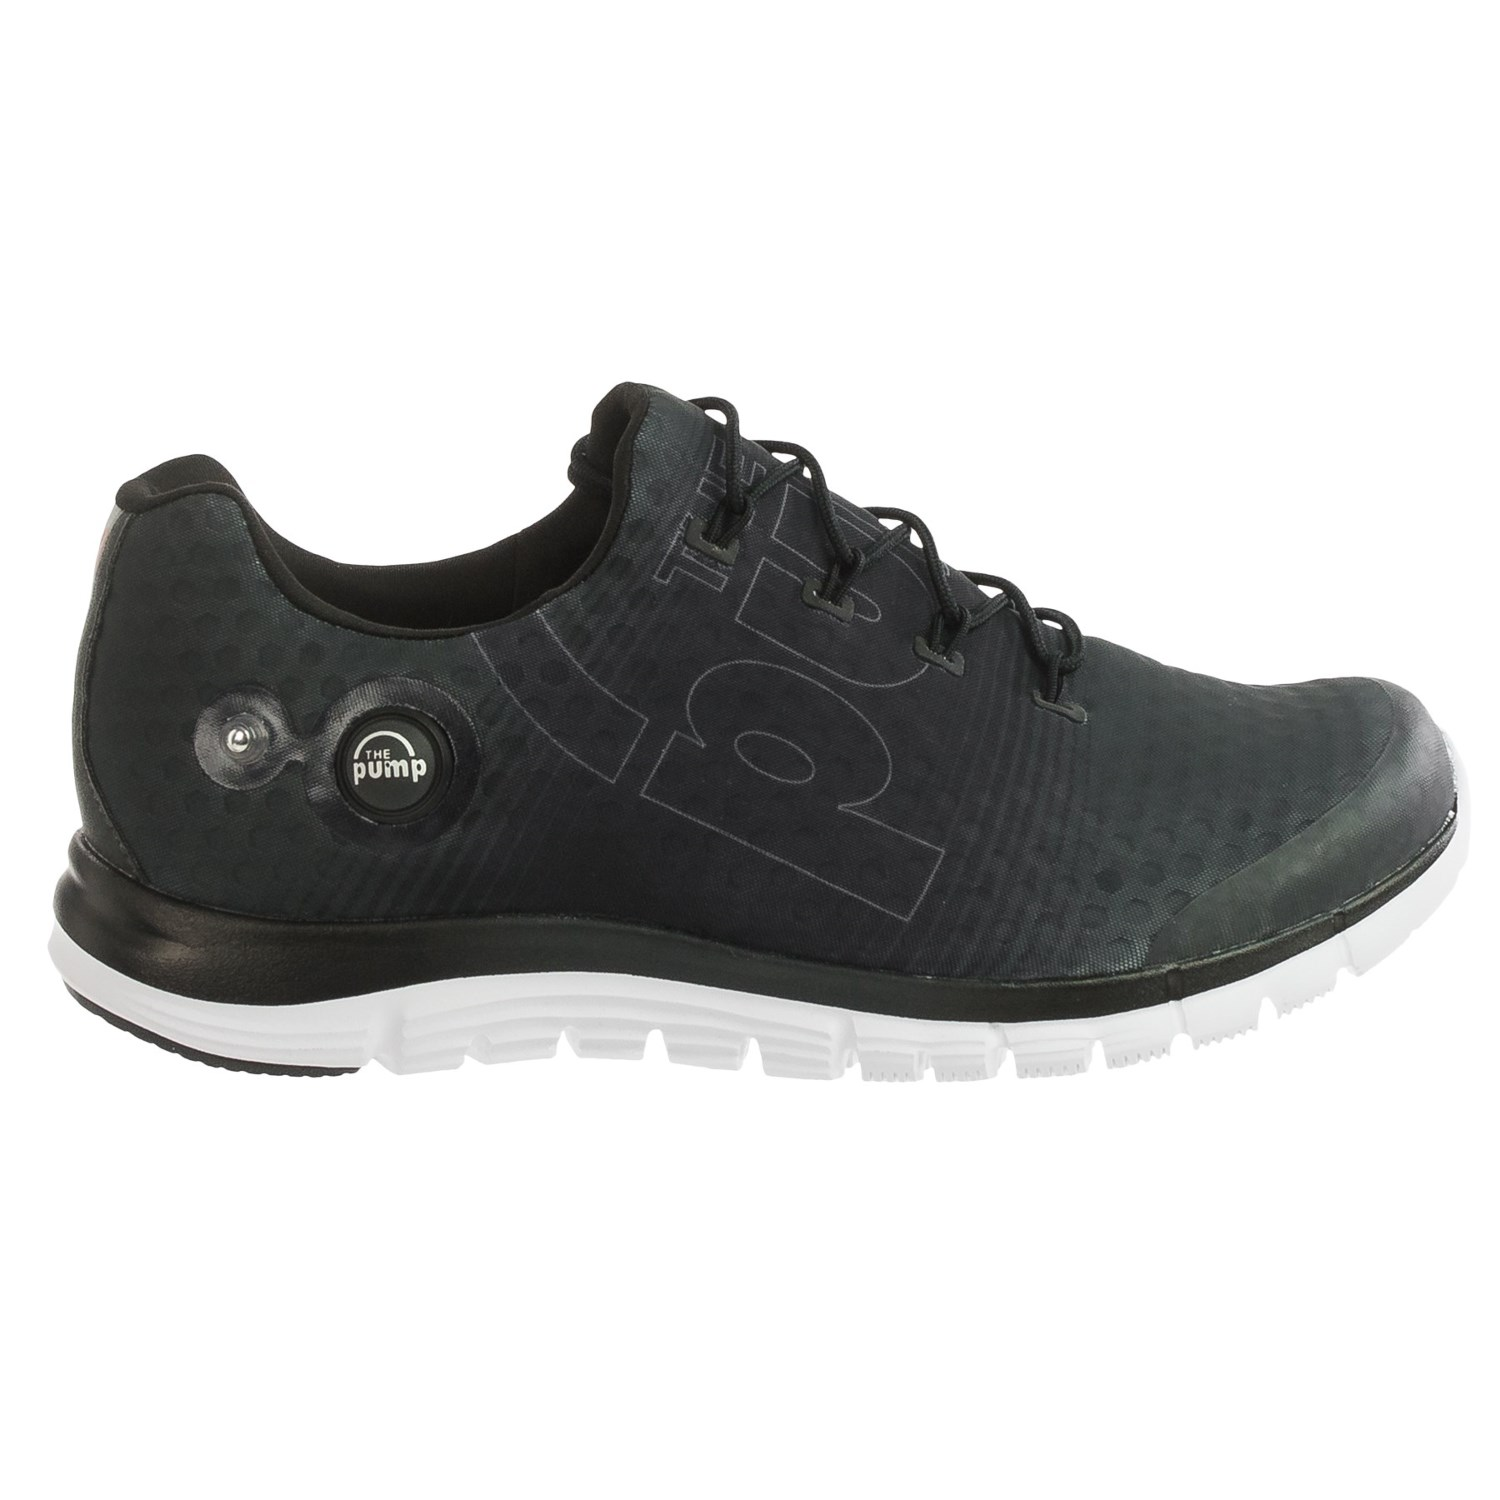 reebok zpump fusion running shoes for men save 40